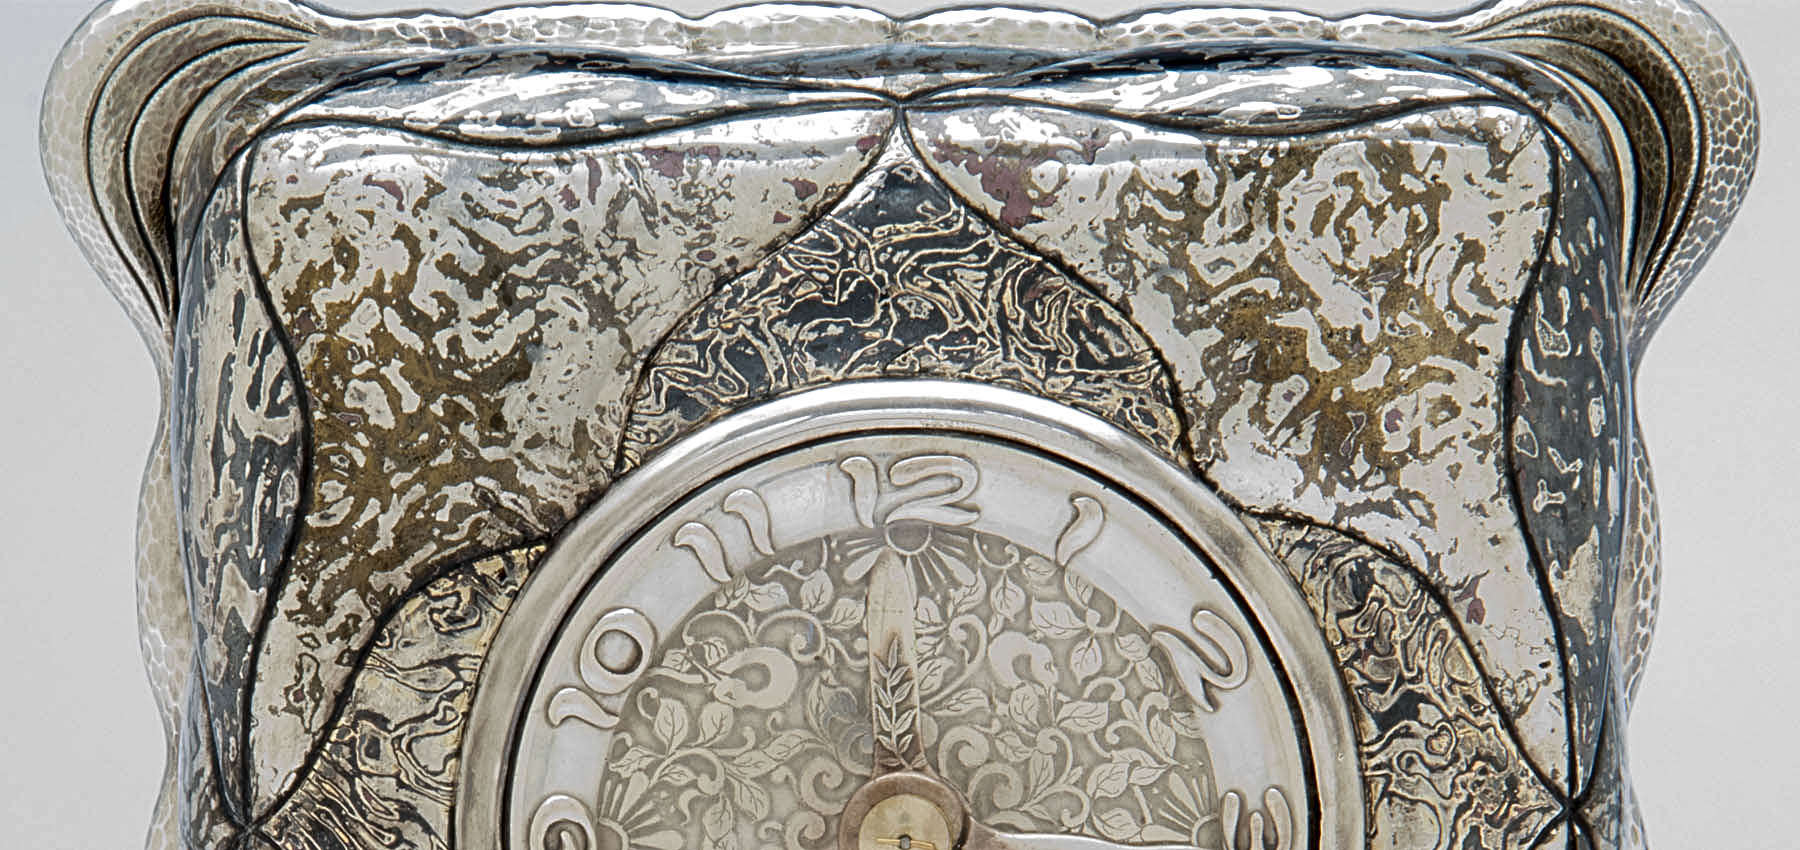 Tiffany & Co. Mixed Metals Mokume Clock Face Detail